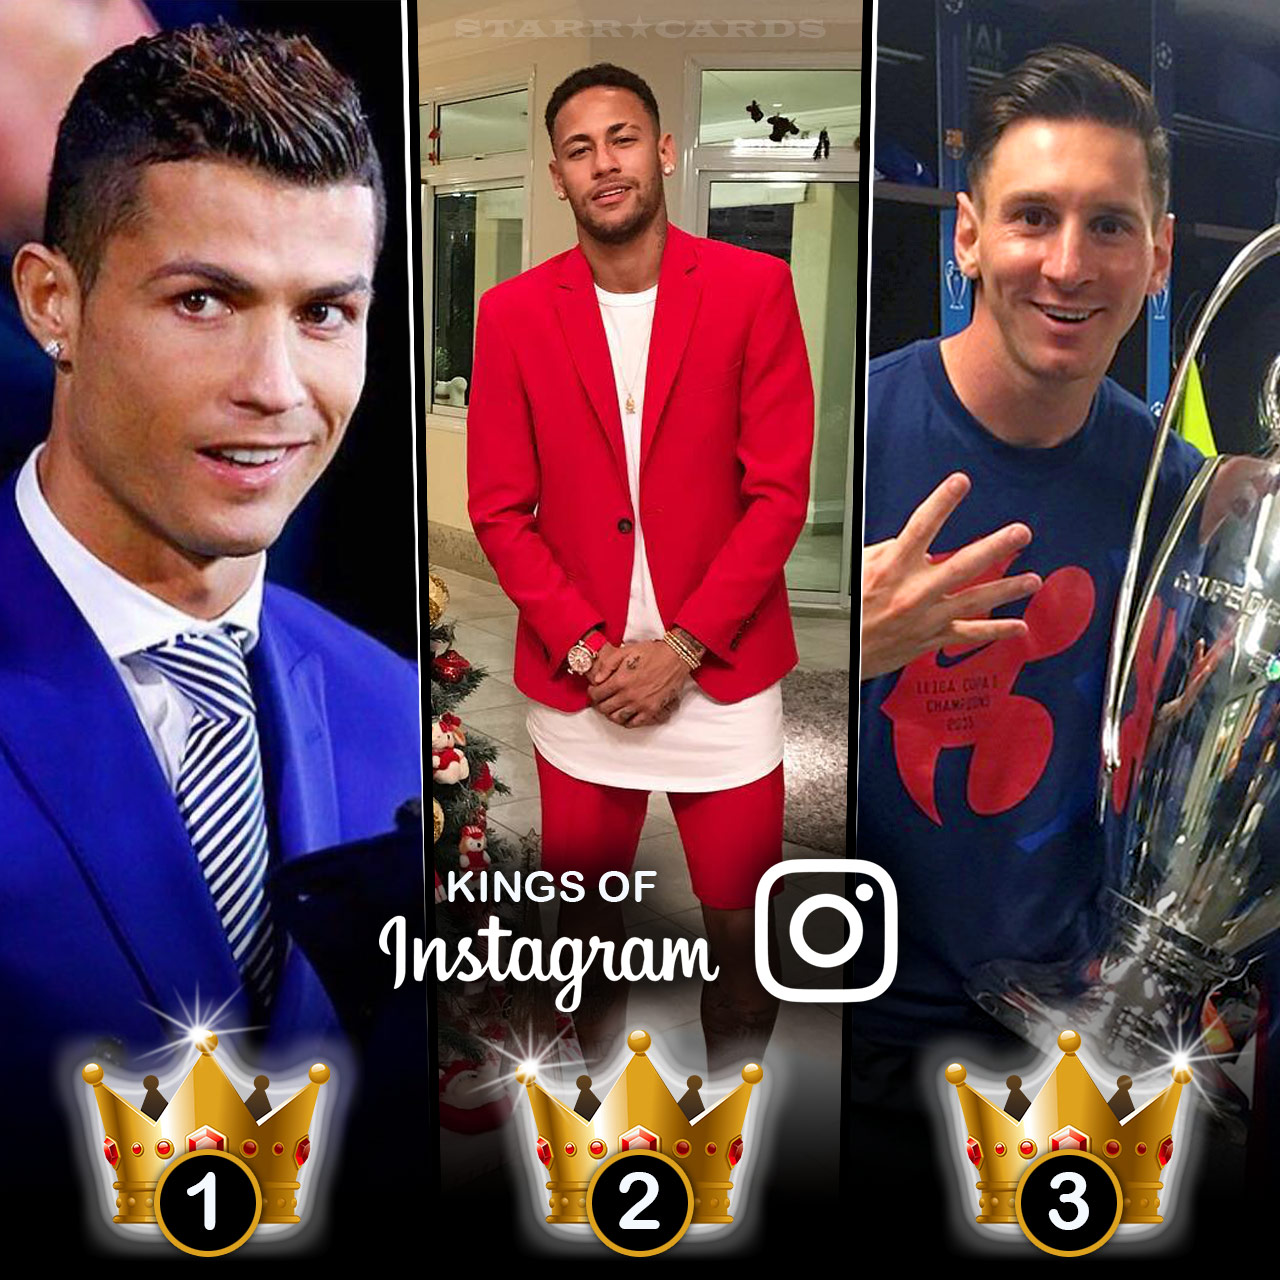 Kings Of Instagram Cristiano Ronaldo Neymar Lionel Messi Top The Charts